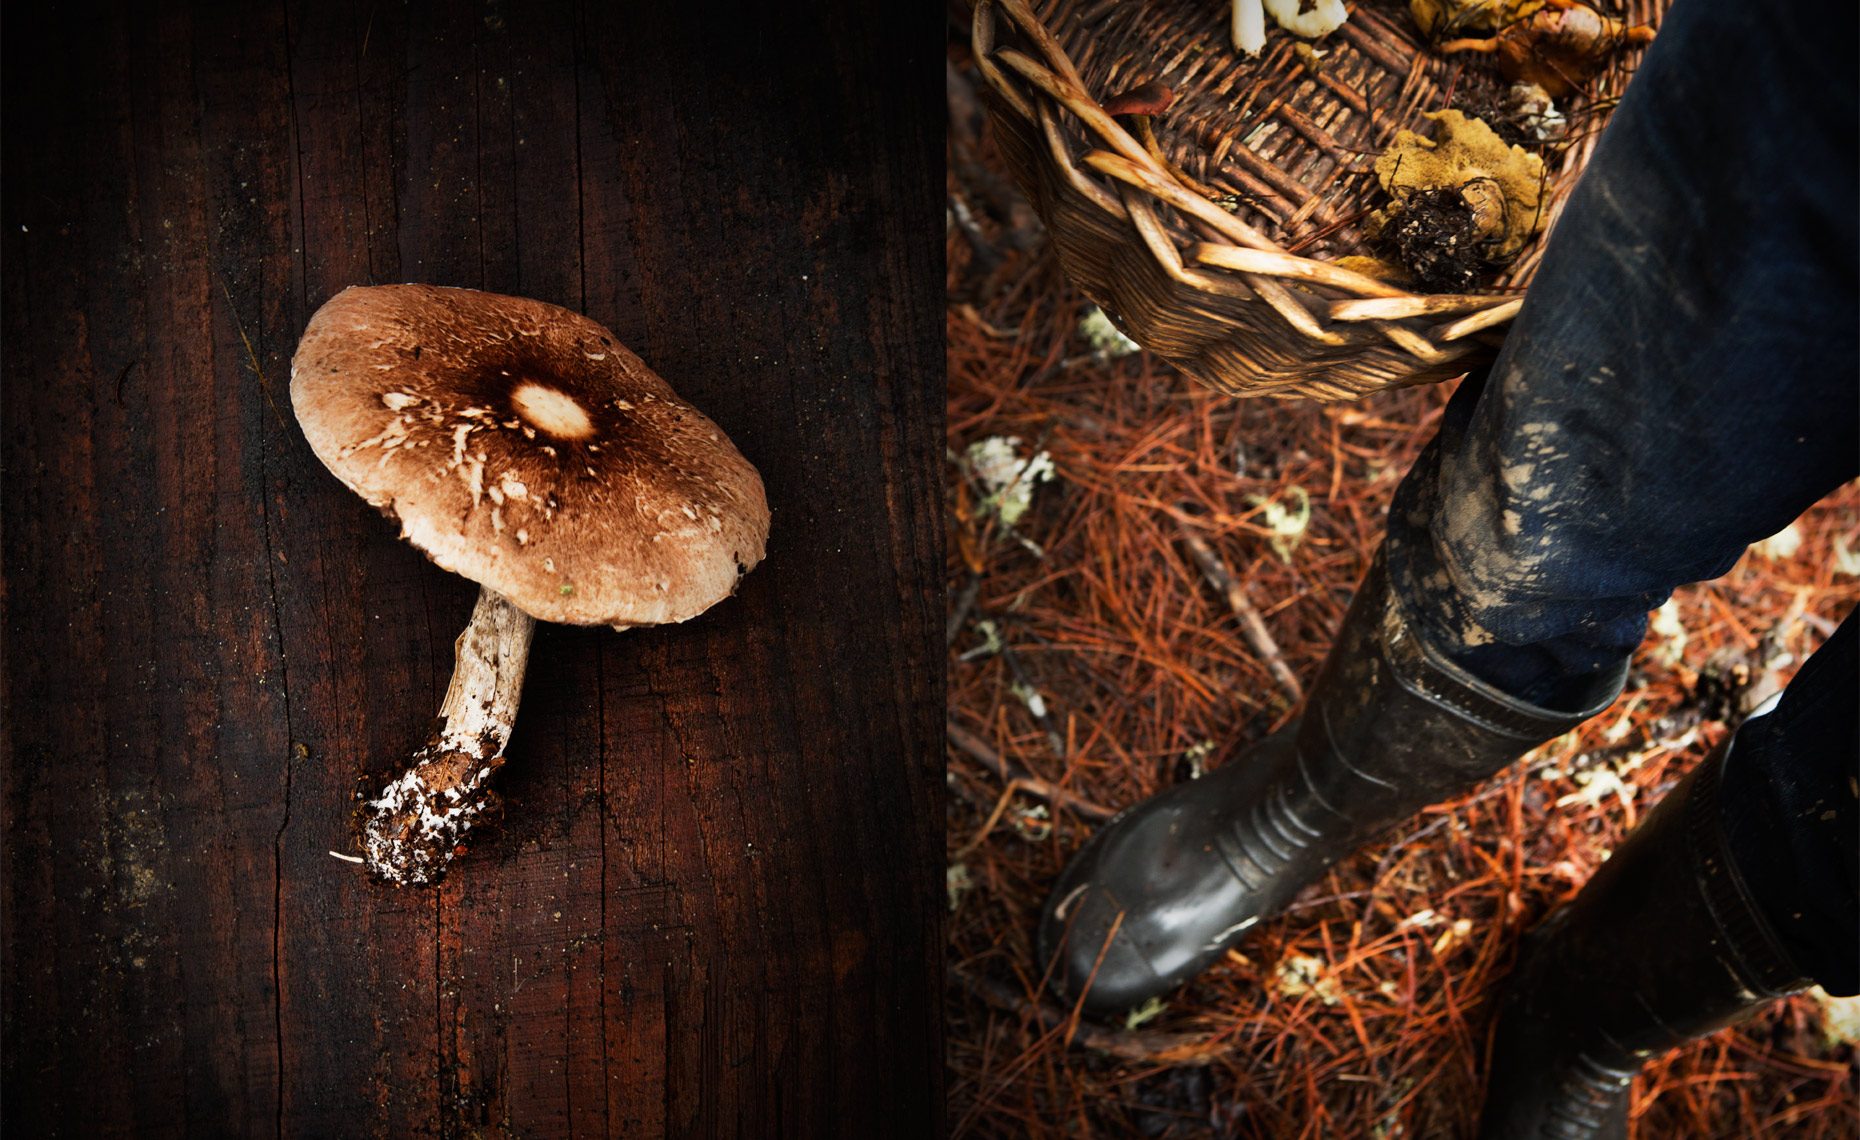 san francisco food photographer, mushroom hunt